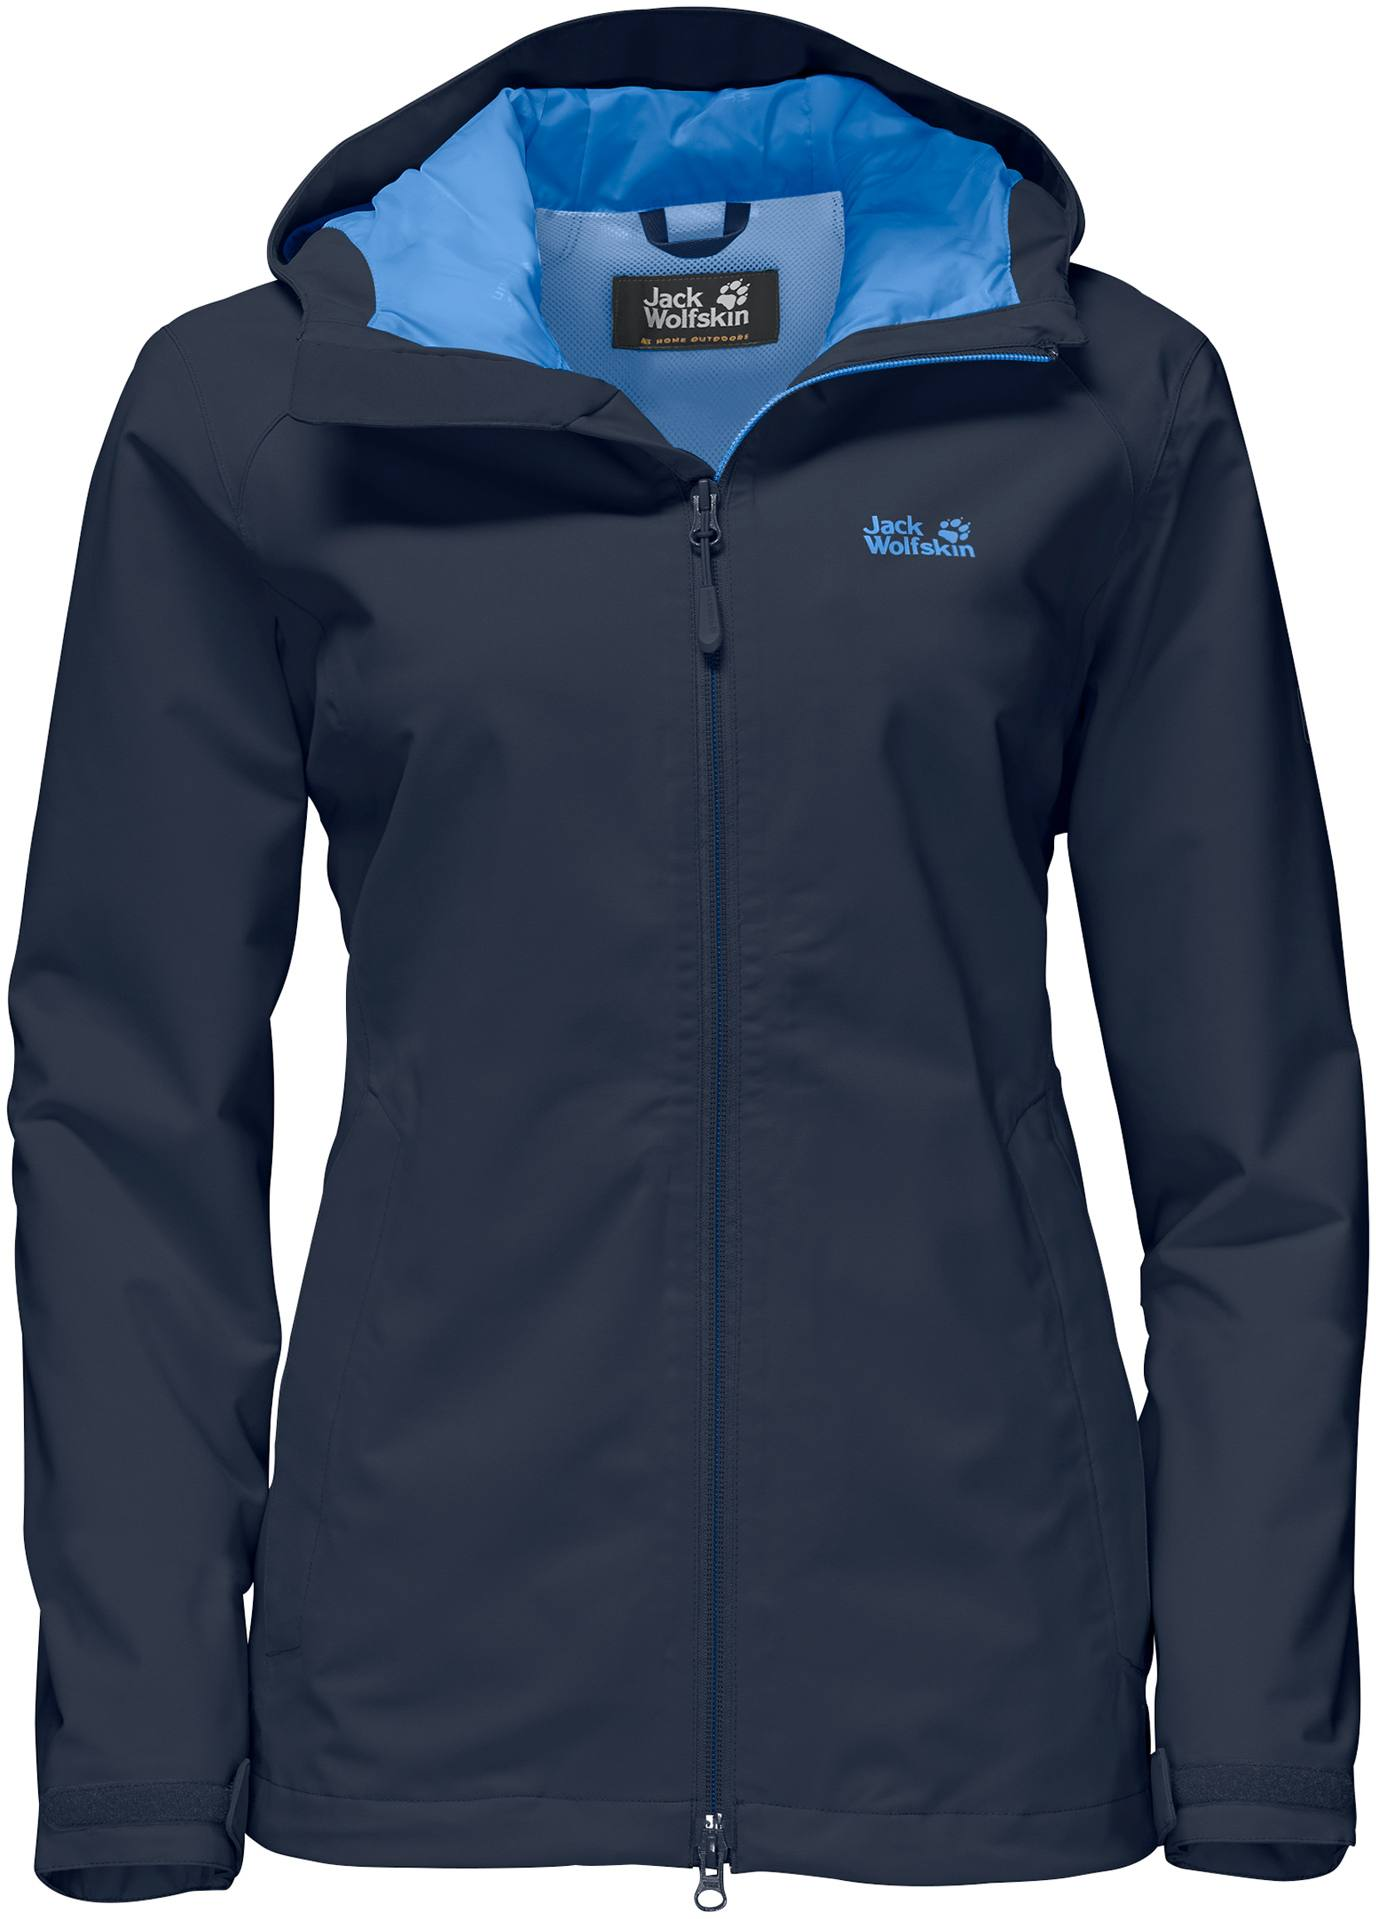 37c7ad0dec Jack Wolfskin Arroyo Jacket Women's | Scandinavian Outdoor